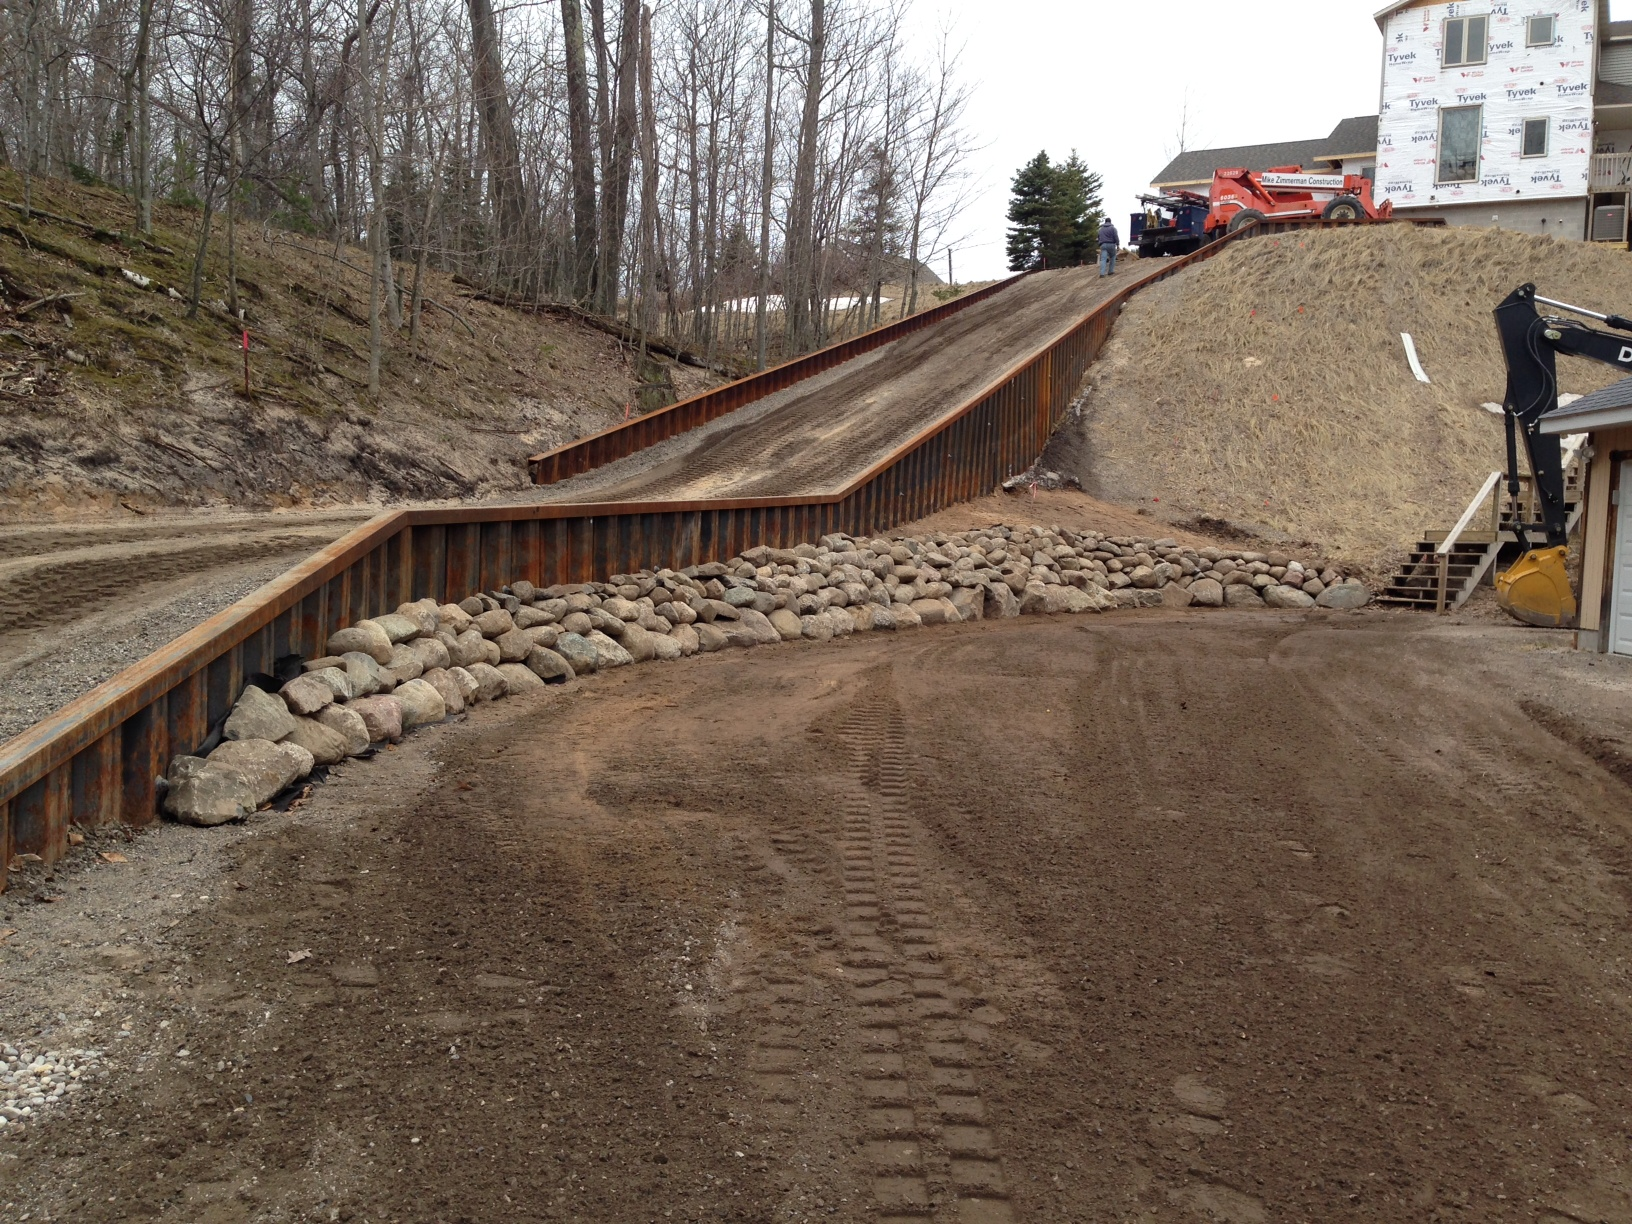 Steel Retaining Wall/New Driveway/Bank Stabilization/Rock Placement, photo 1